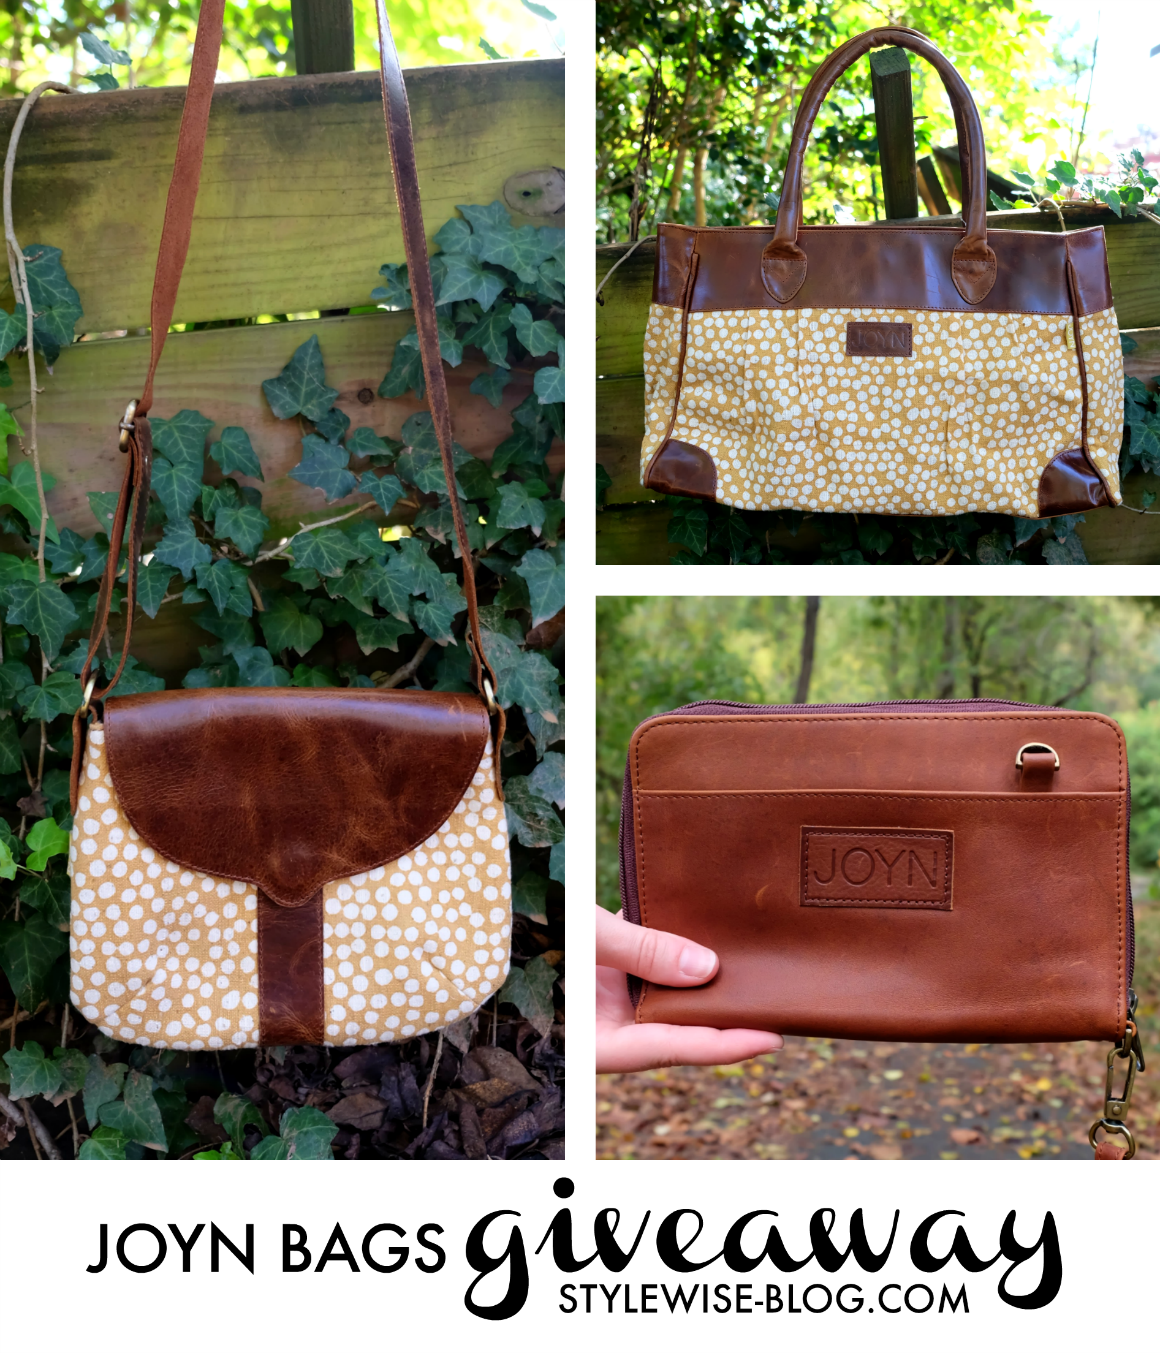 JOYN bags fair trade handbags review and giveaway